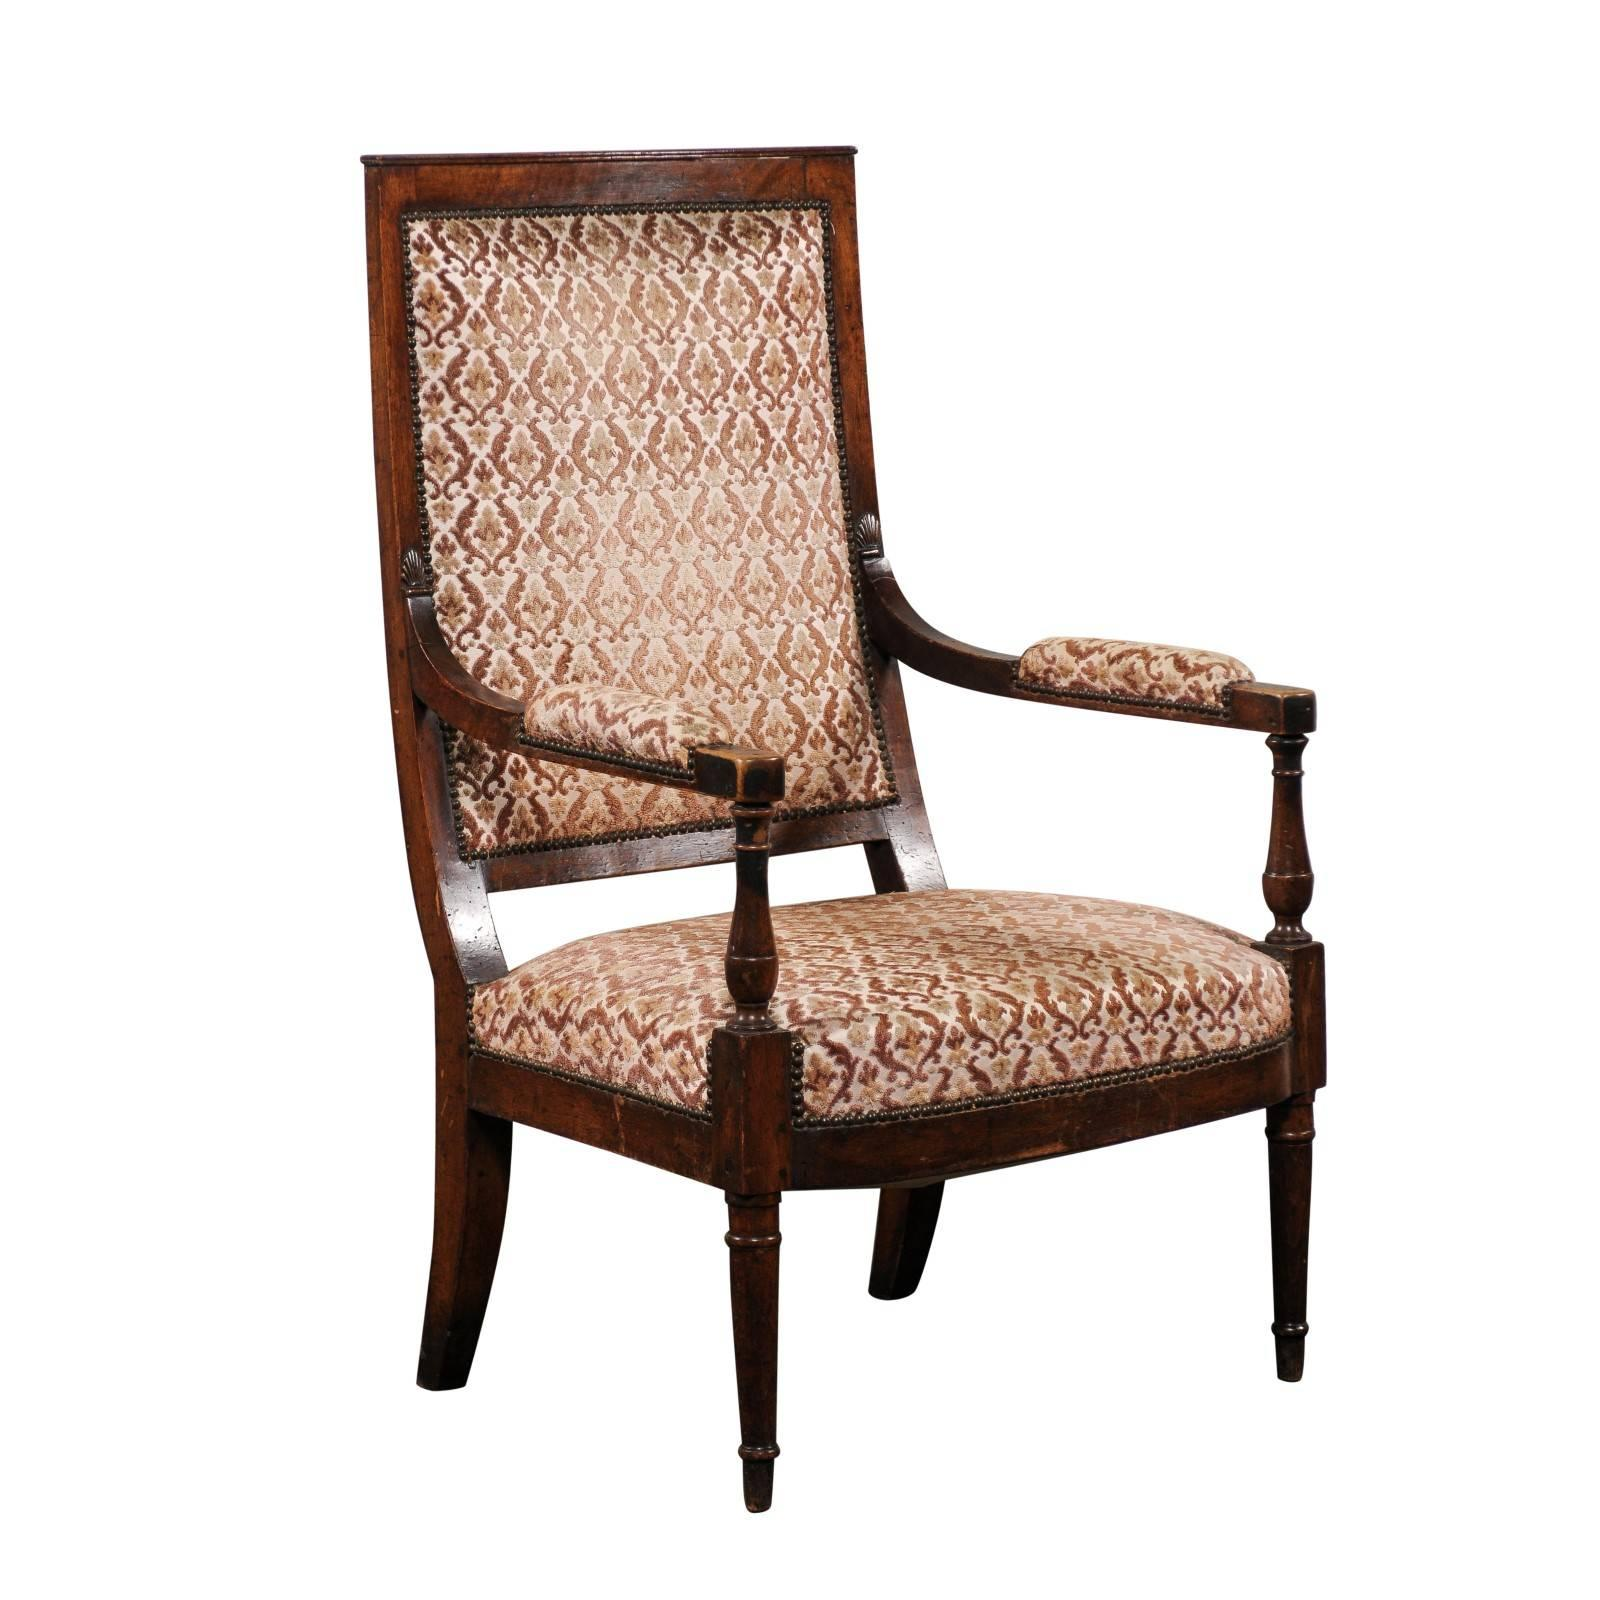 large scale french chair 19th century